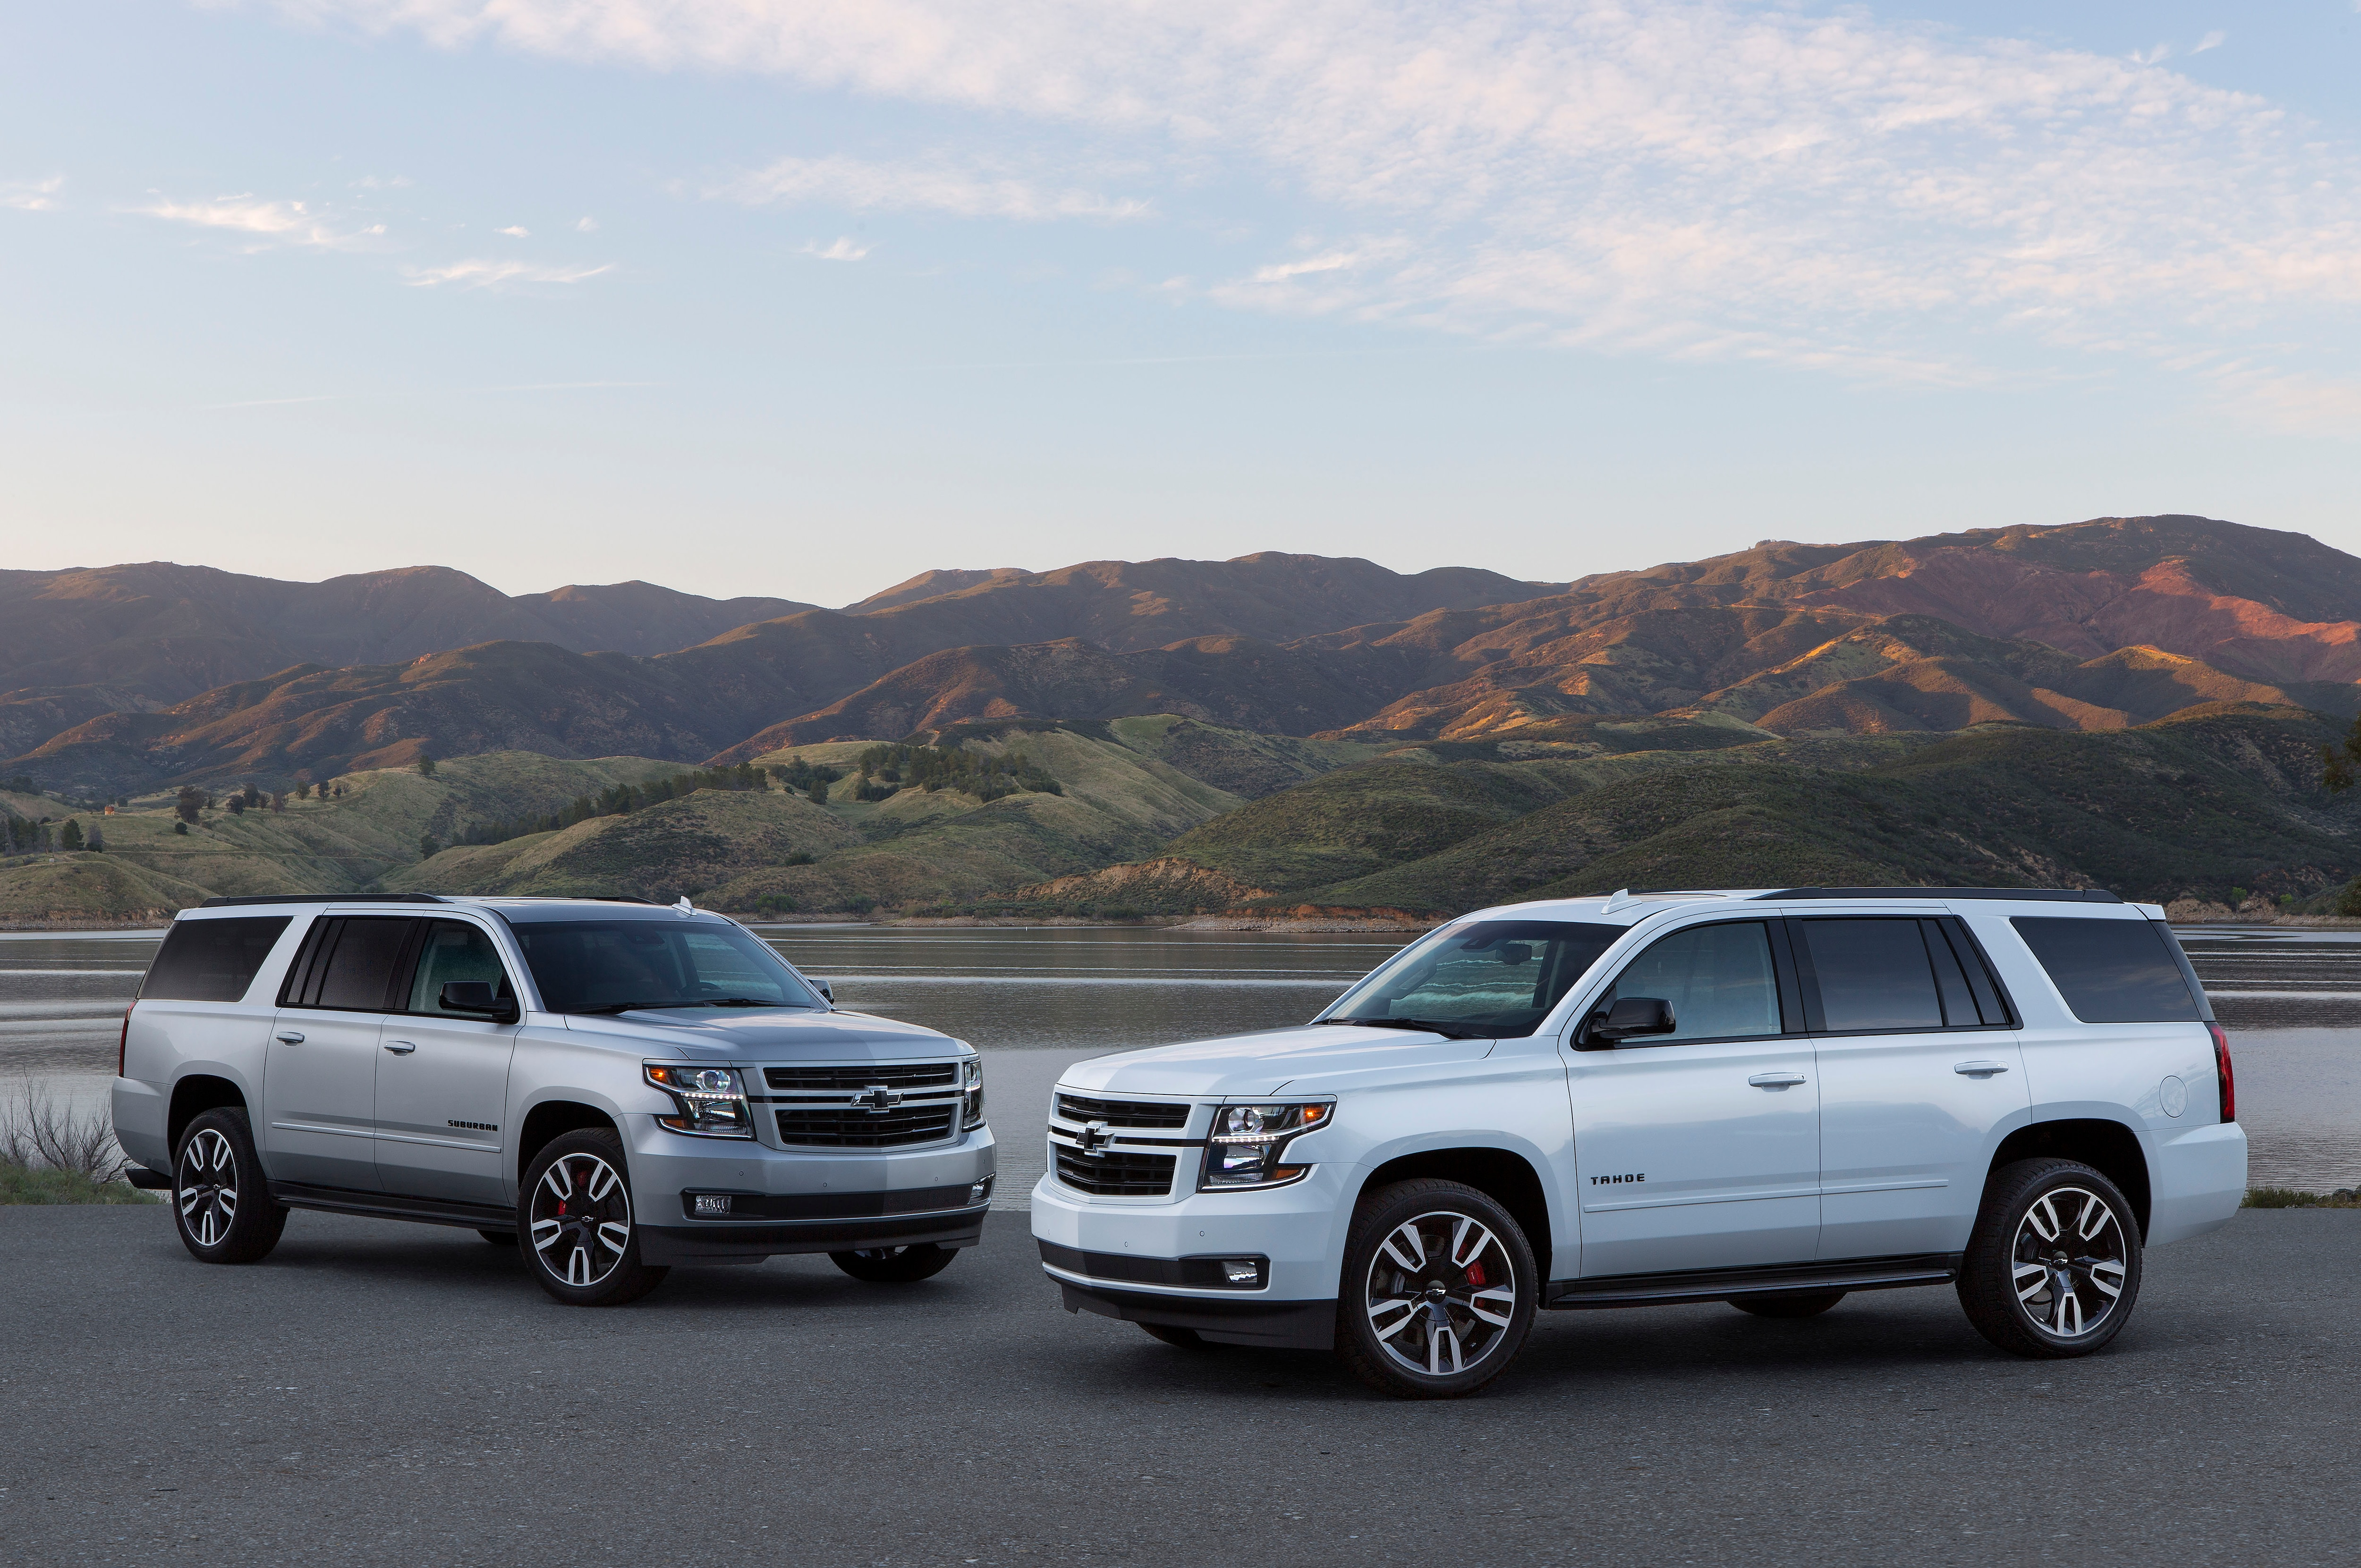 2019 Chevrolet Suburban RST With Tahoe RST